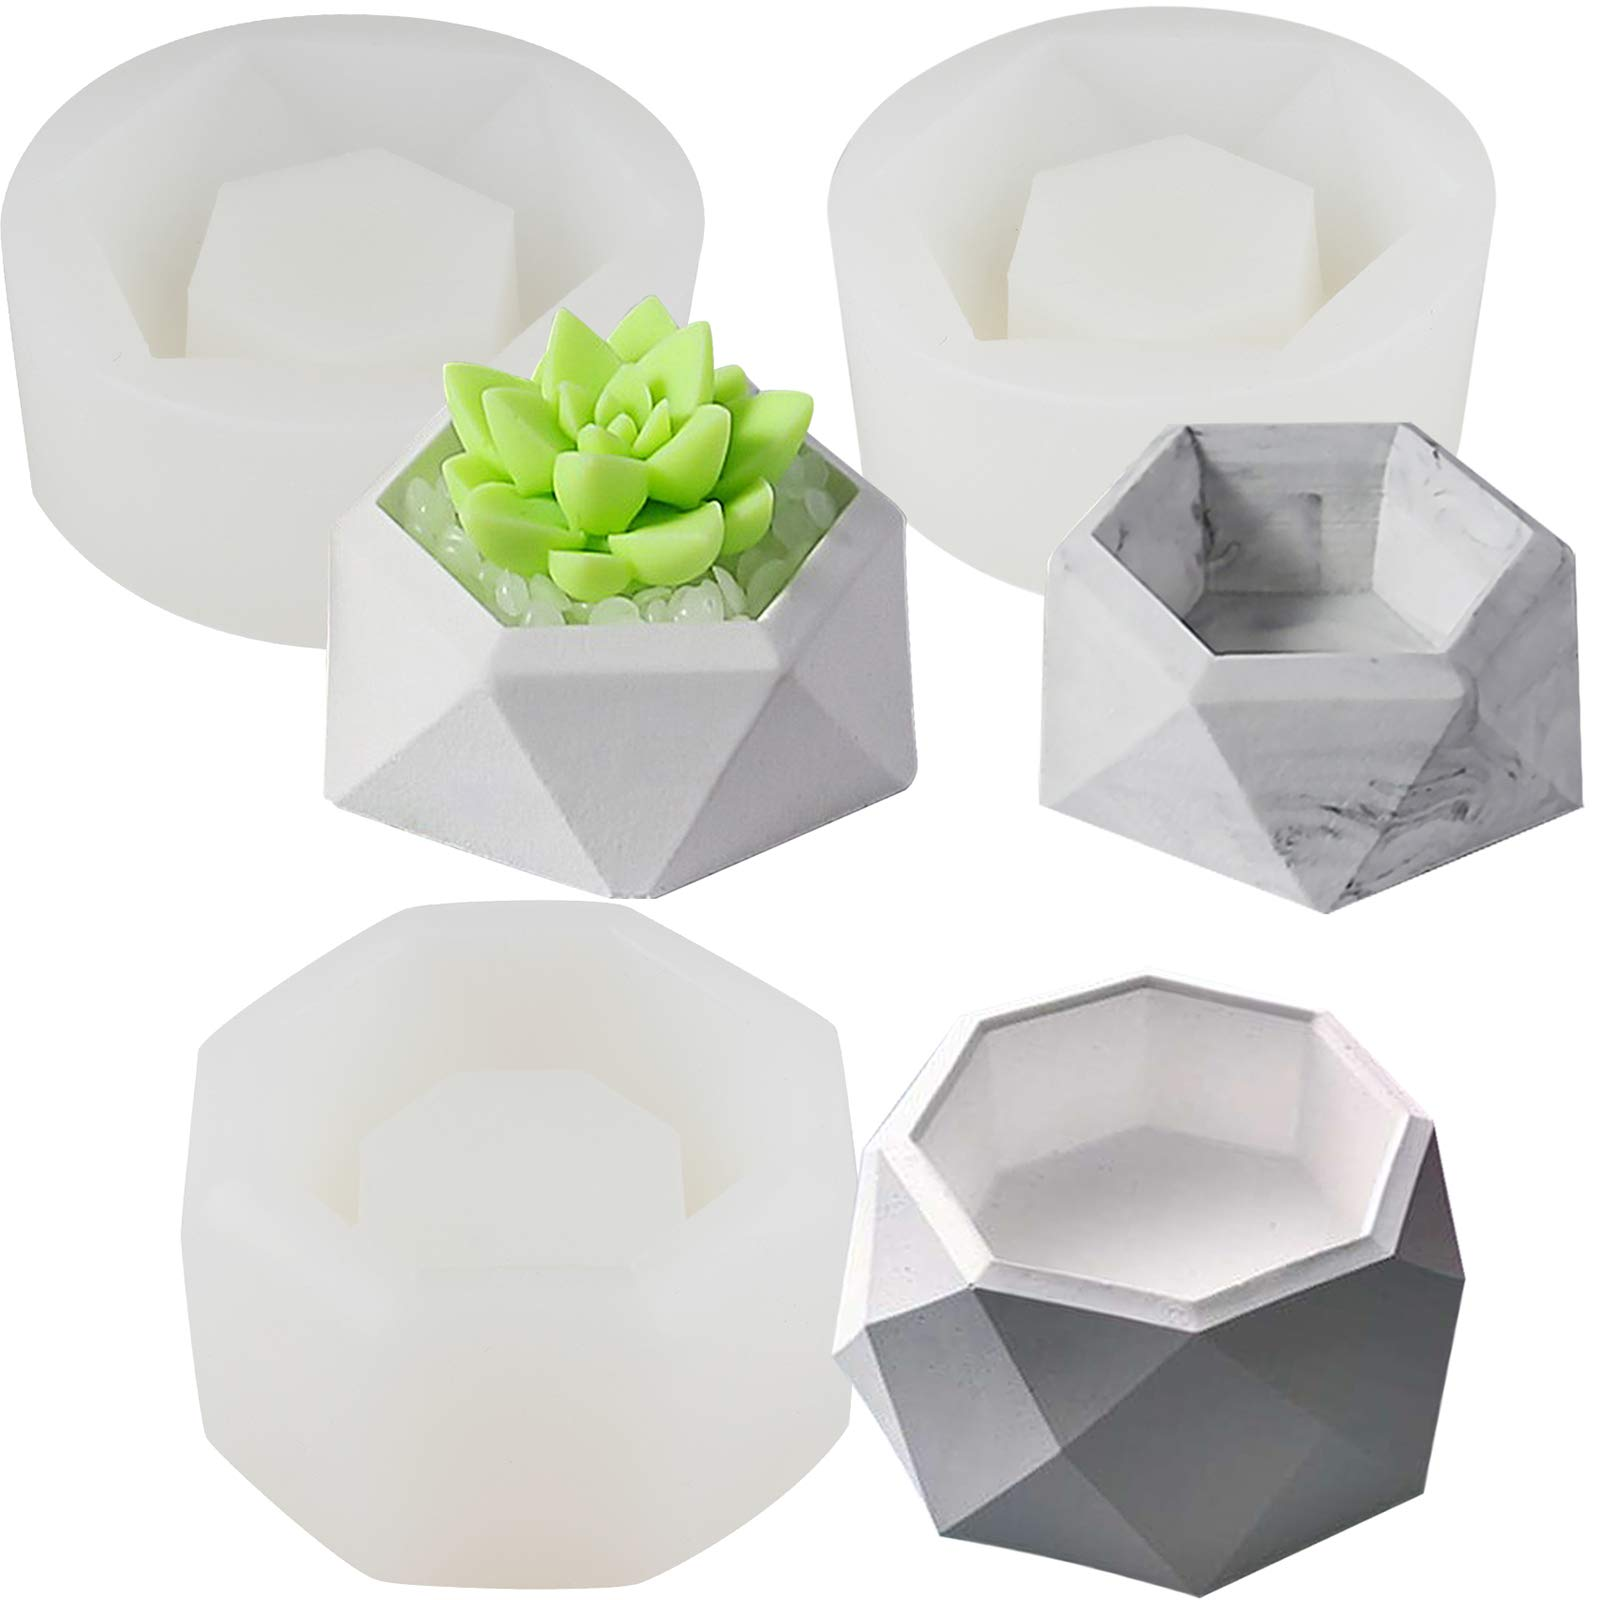 Funshowcase Faceted Geometry Flower Pot Silicone